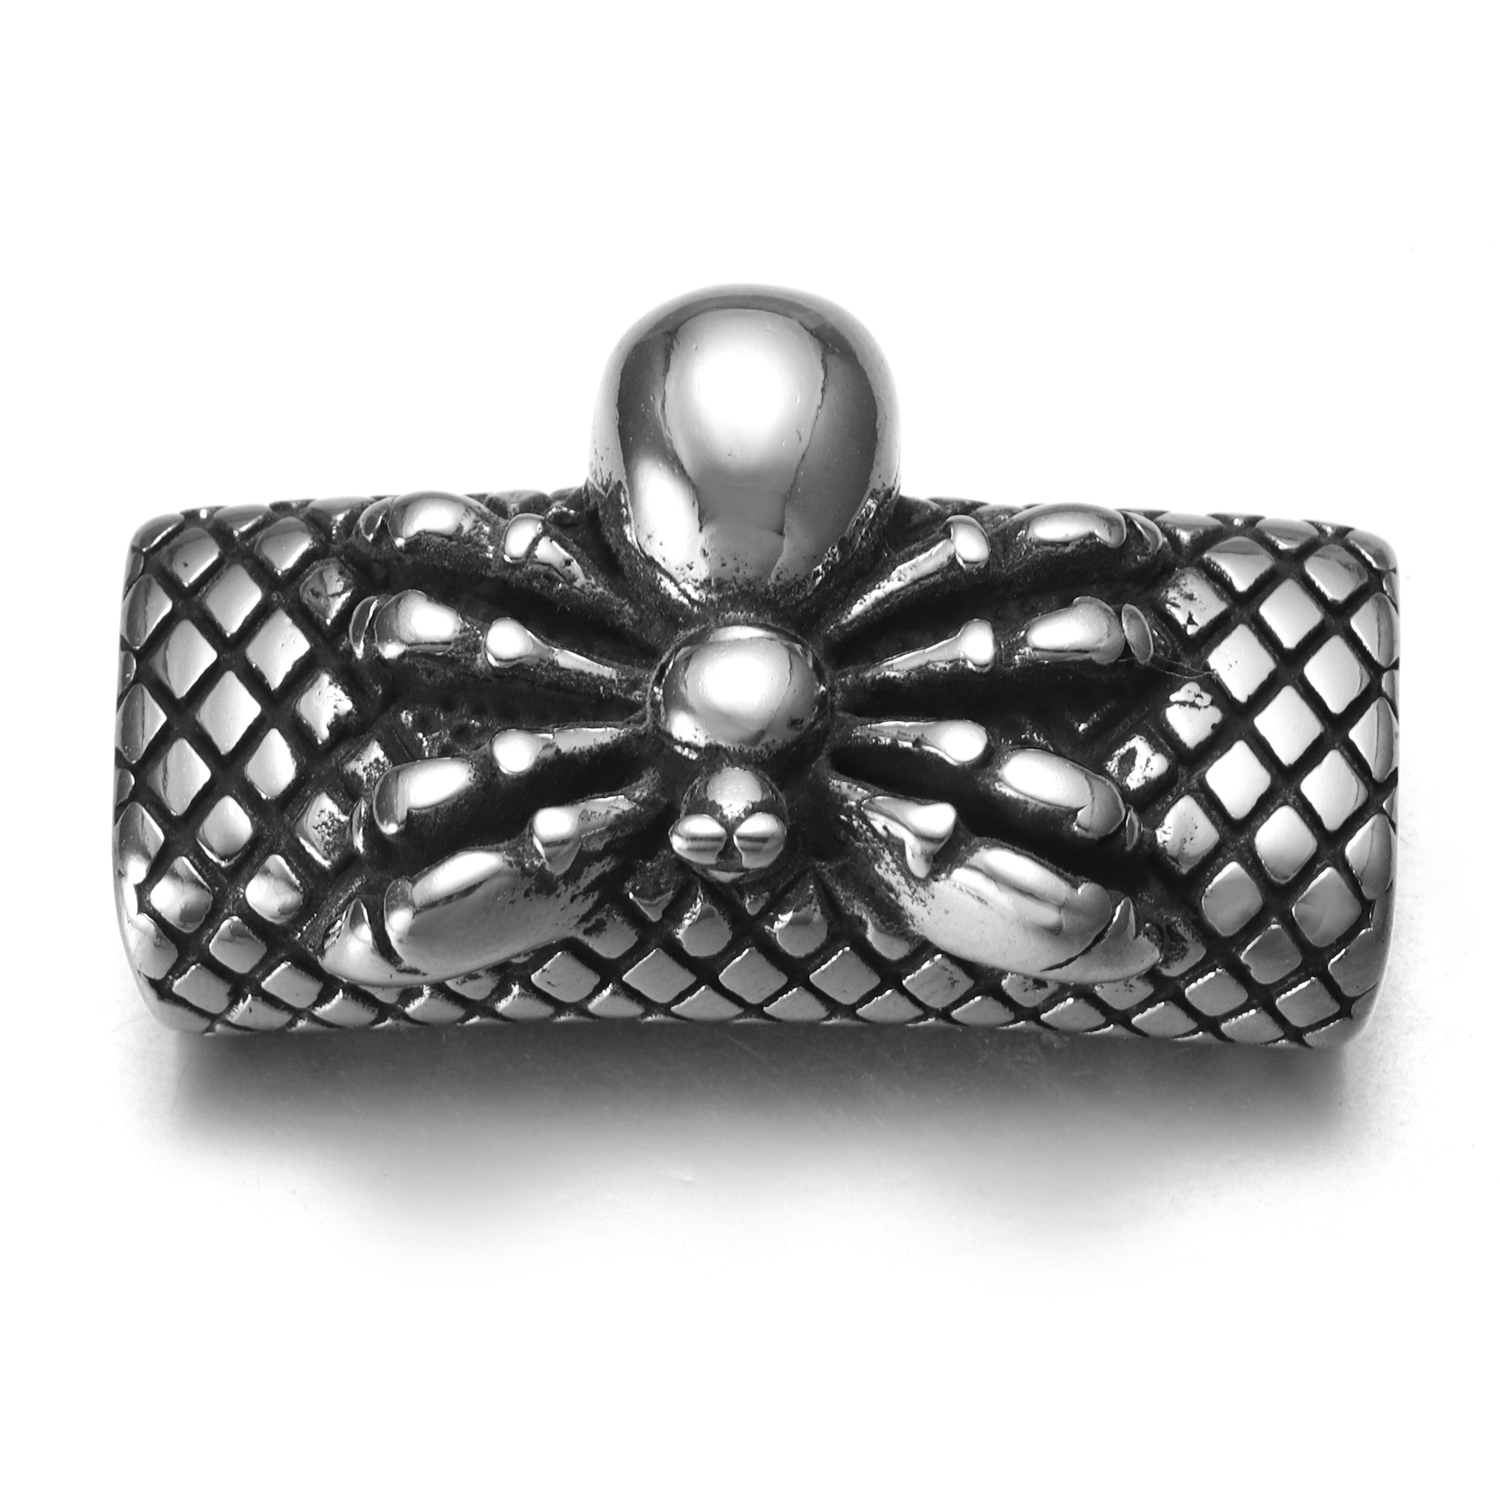 2 Stainless Steel Spider Flat Strong Magnetic Clasp For Up To 13mm Leather Cord